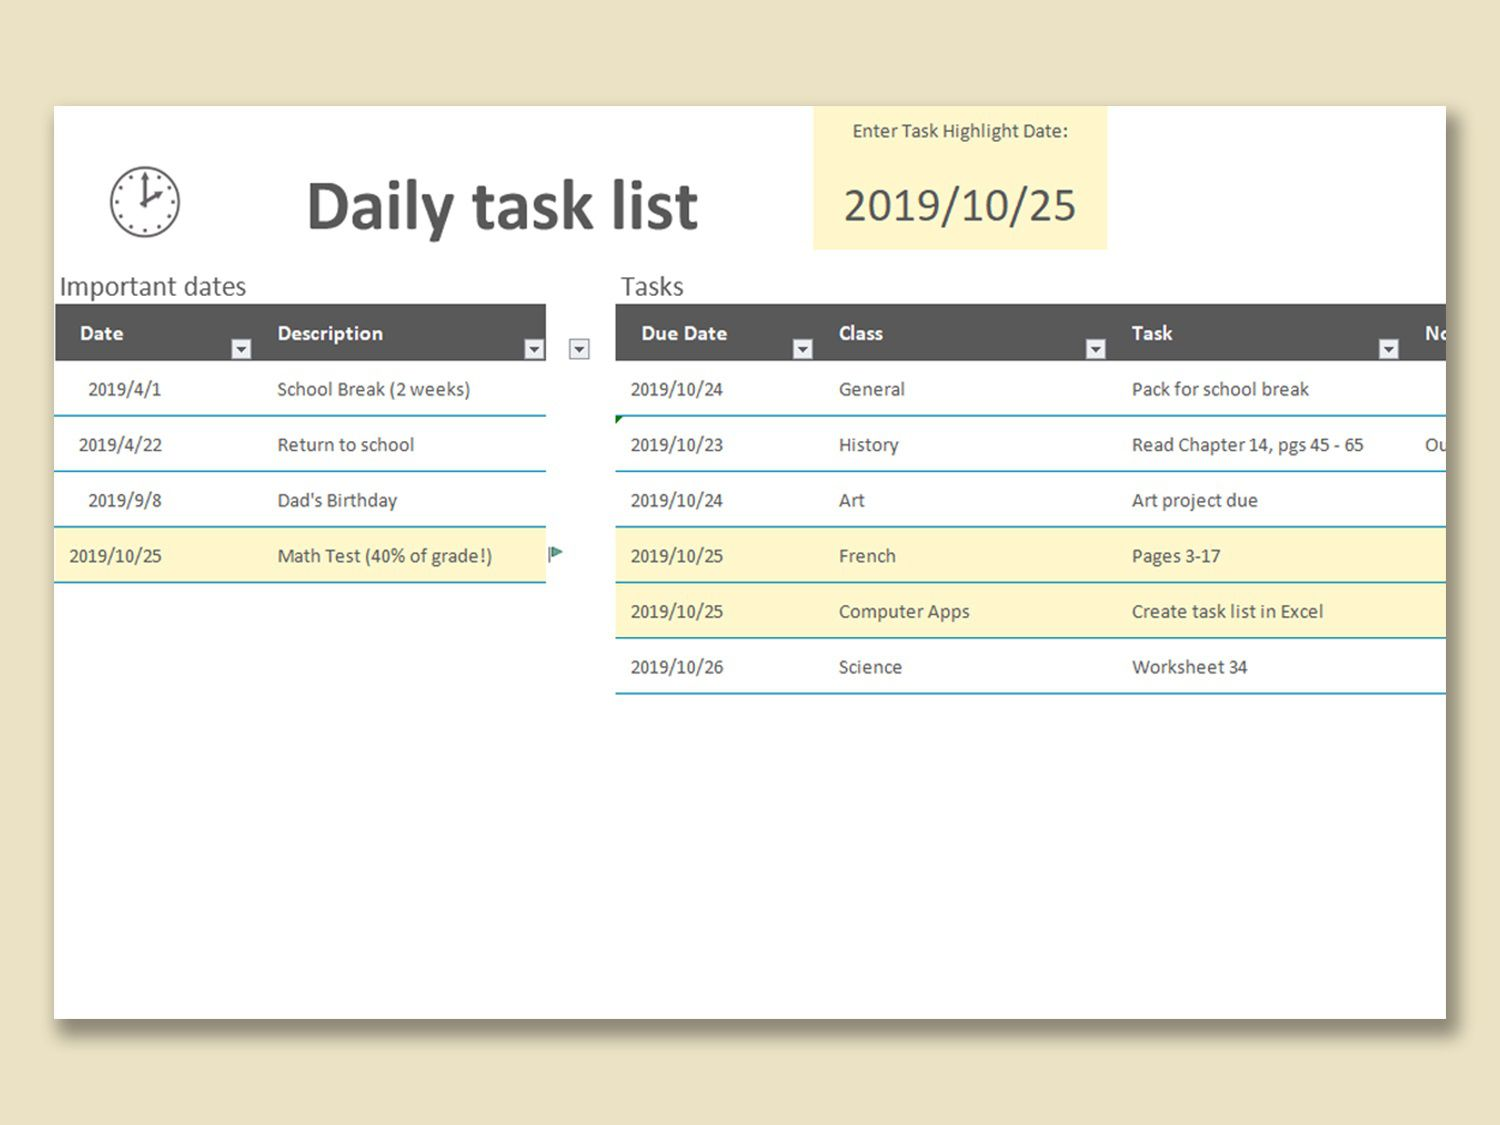 002 Incredible Daily Task List Template Design  Excel Download To Do FreeFull